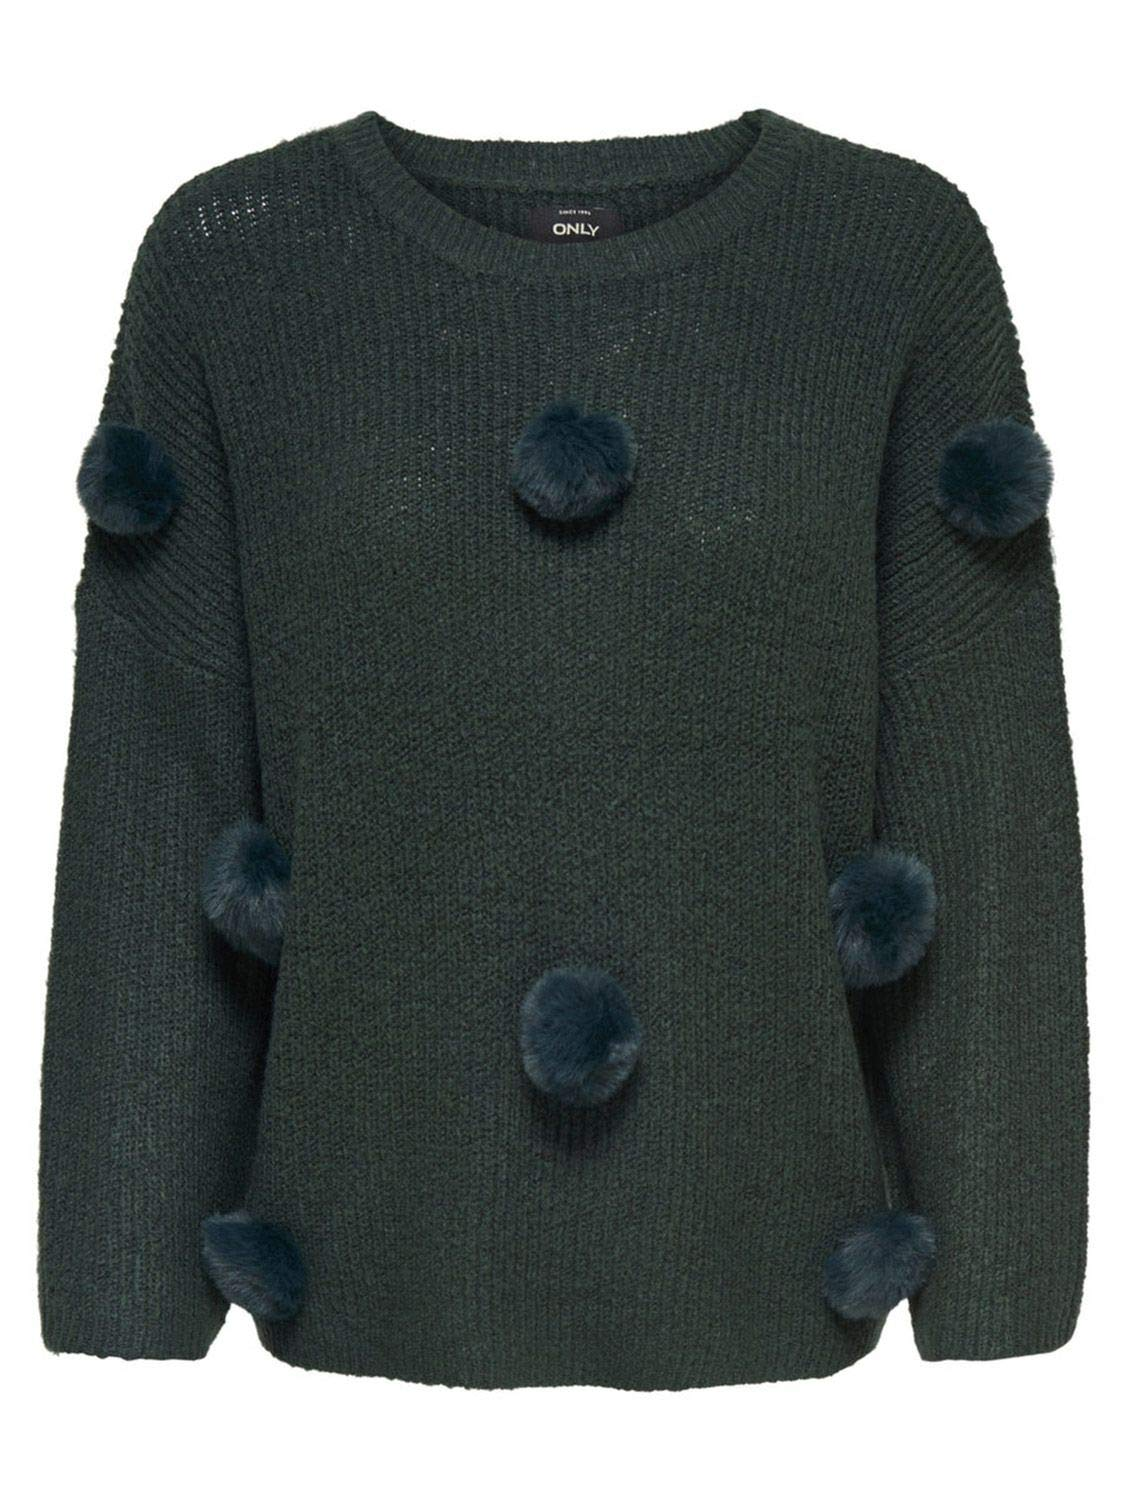 Only Women's 15160707GREEN Green Acrylic Sweater